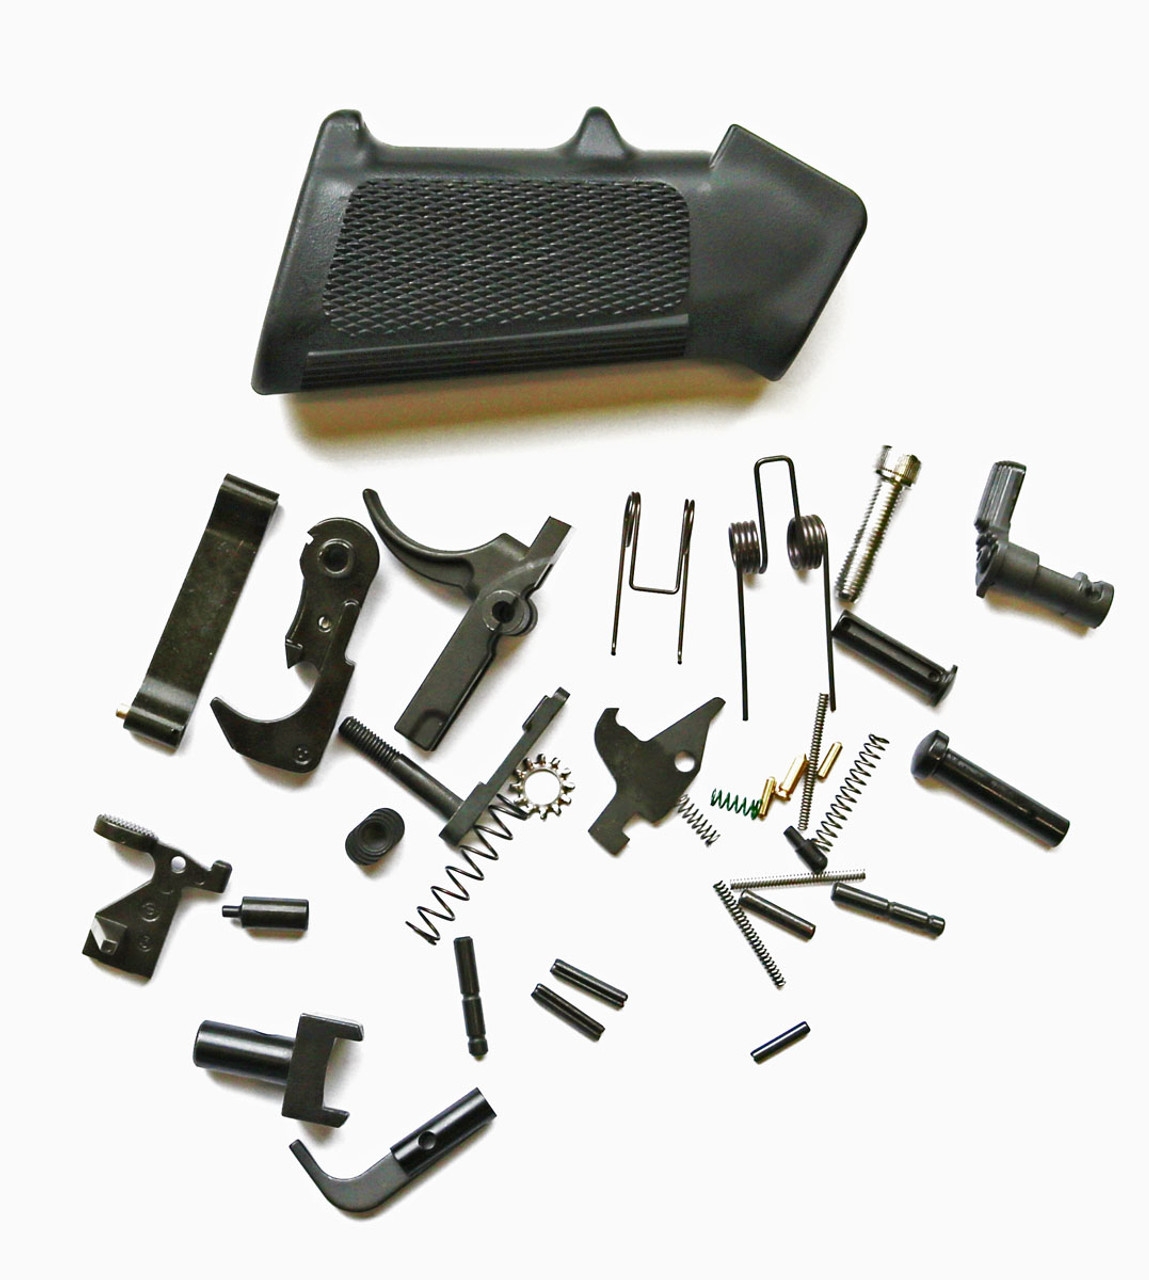 9MM Colt Lower Parts Kit with Grip